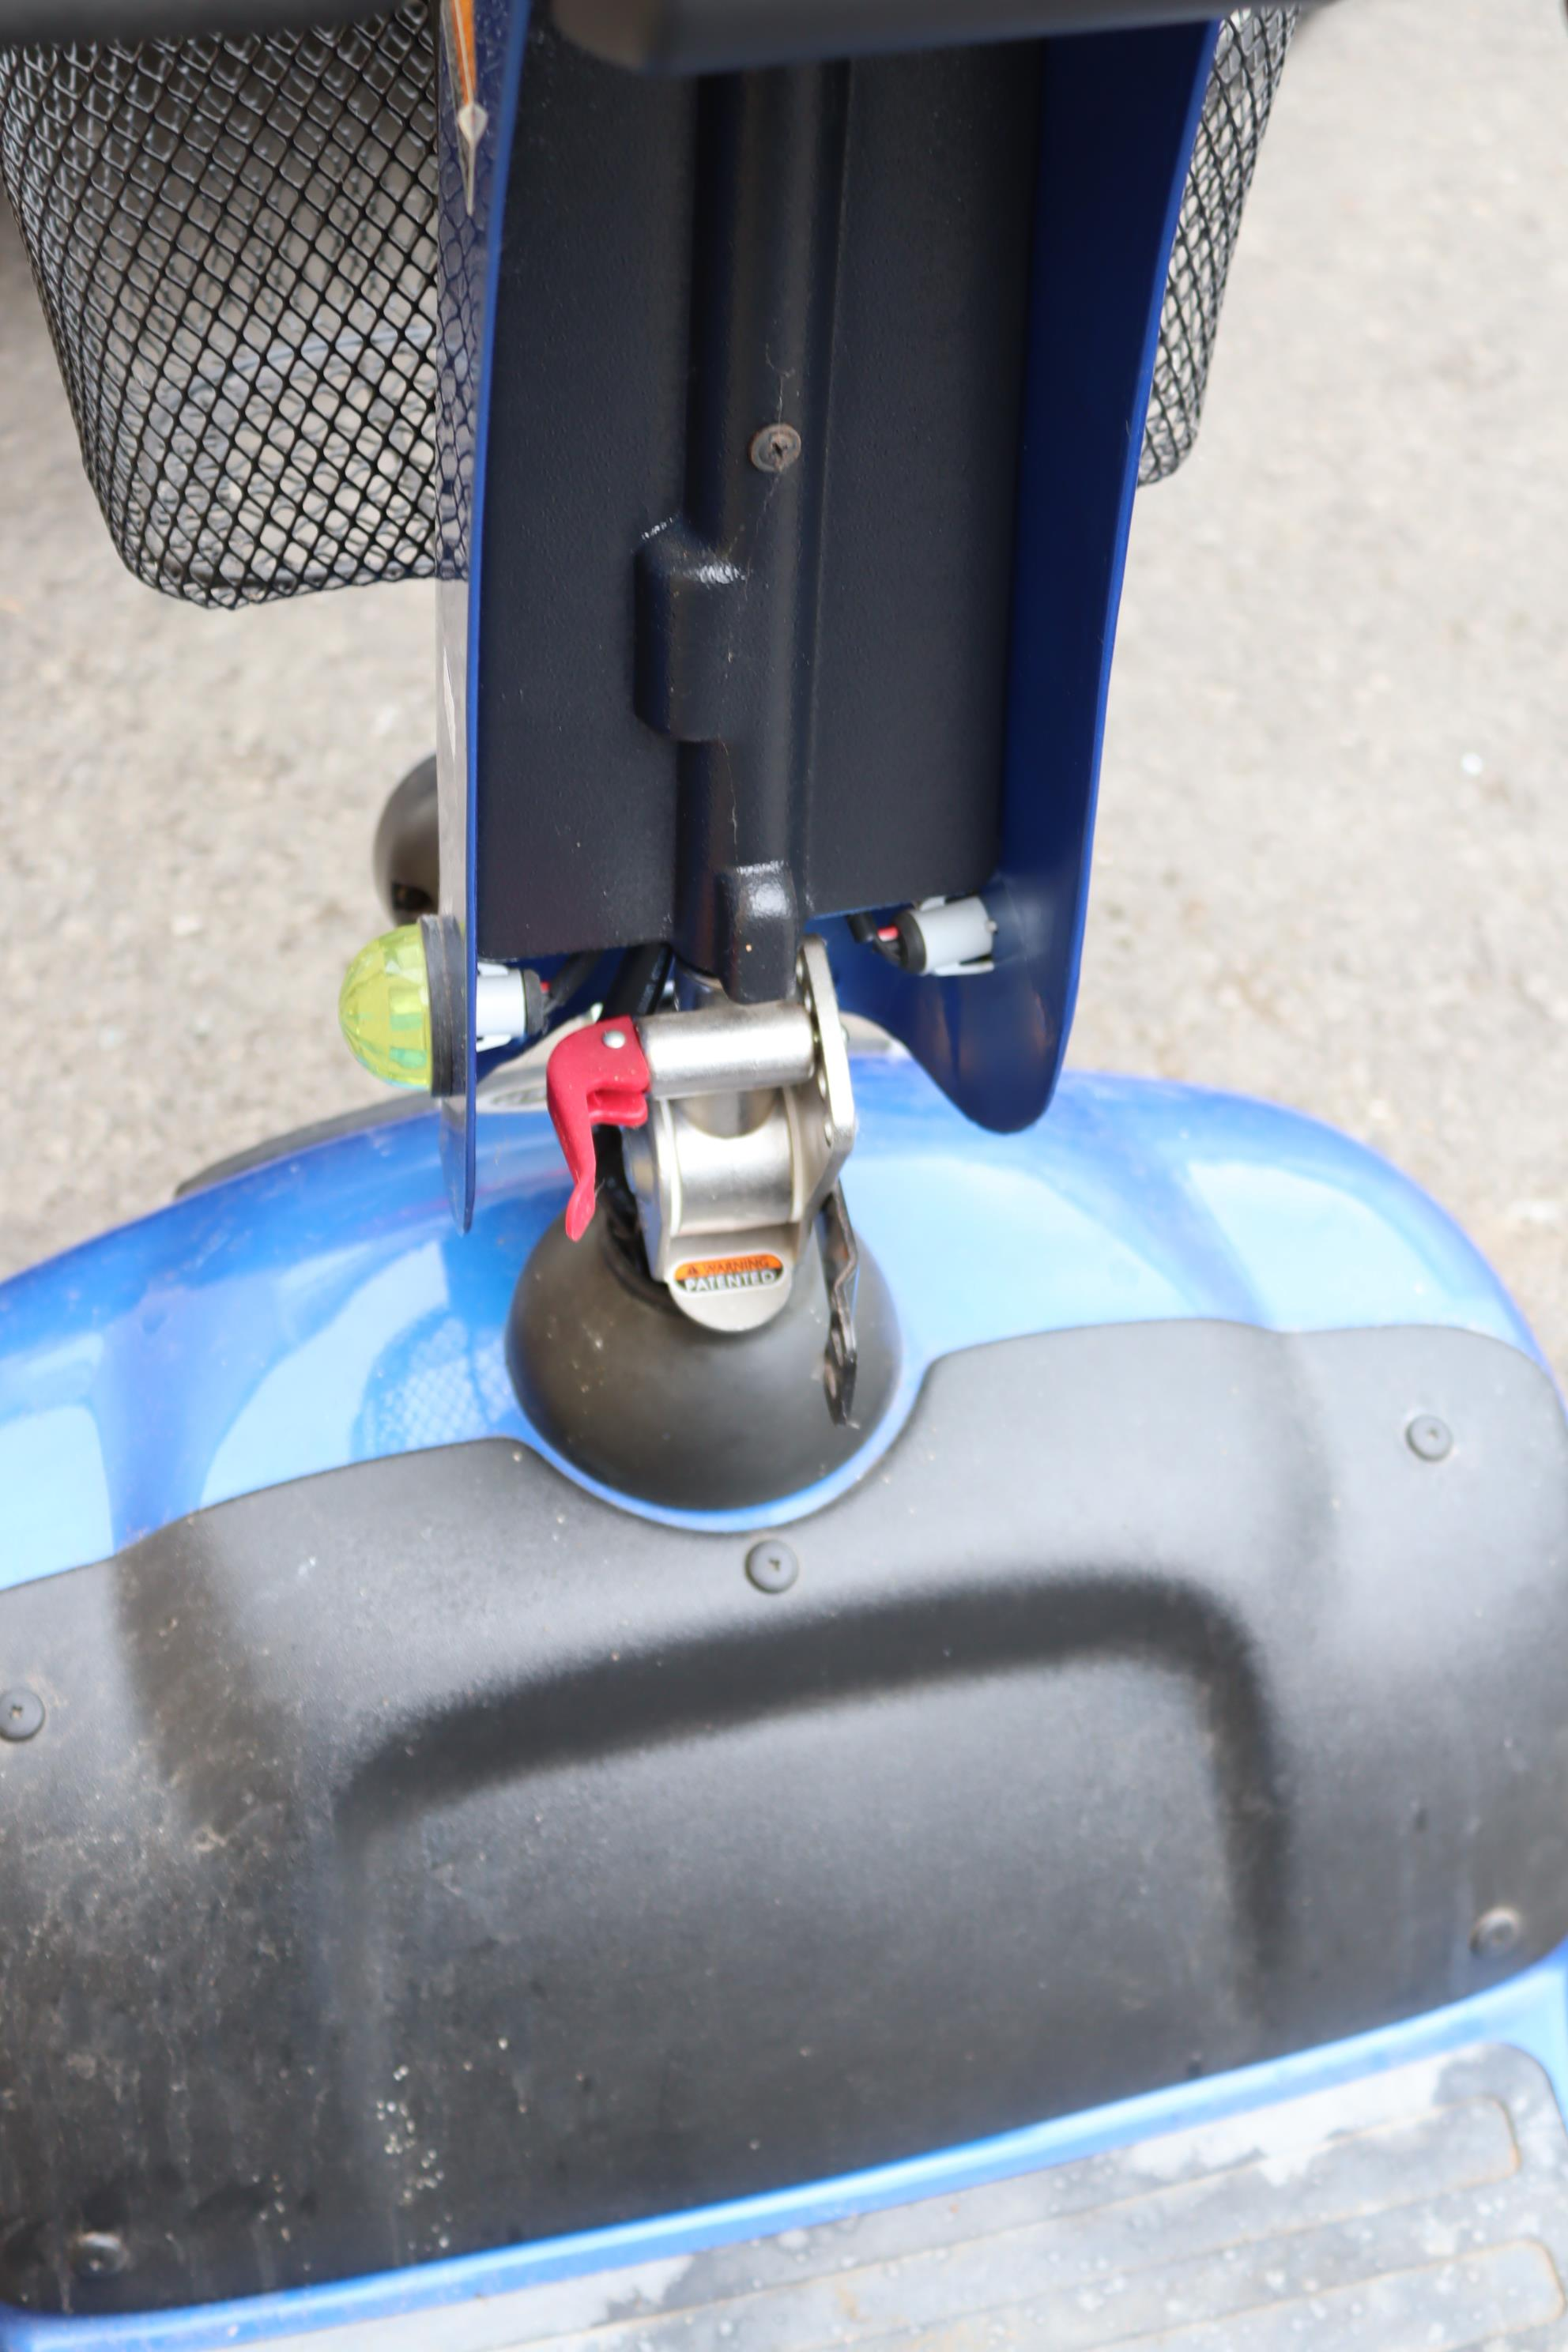 A Shoprider mobility scooter with battery, charger, & key. - Image 6 of 8